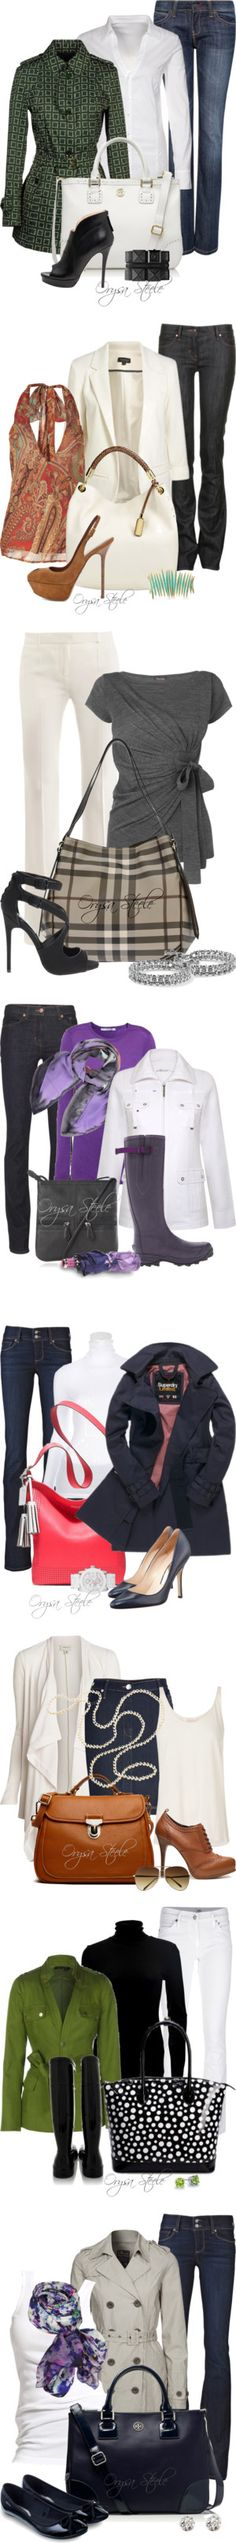 """The Spring Collection"" by orysa ❤ liked on Polyvore"